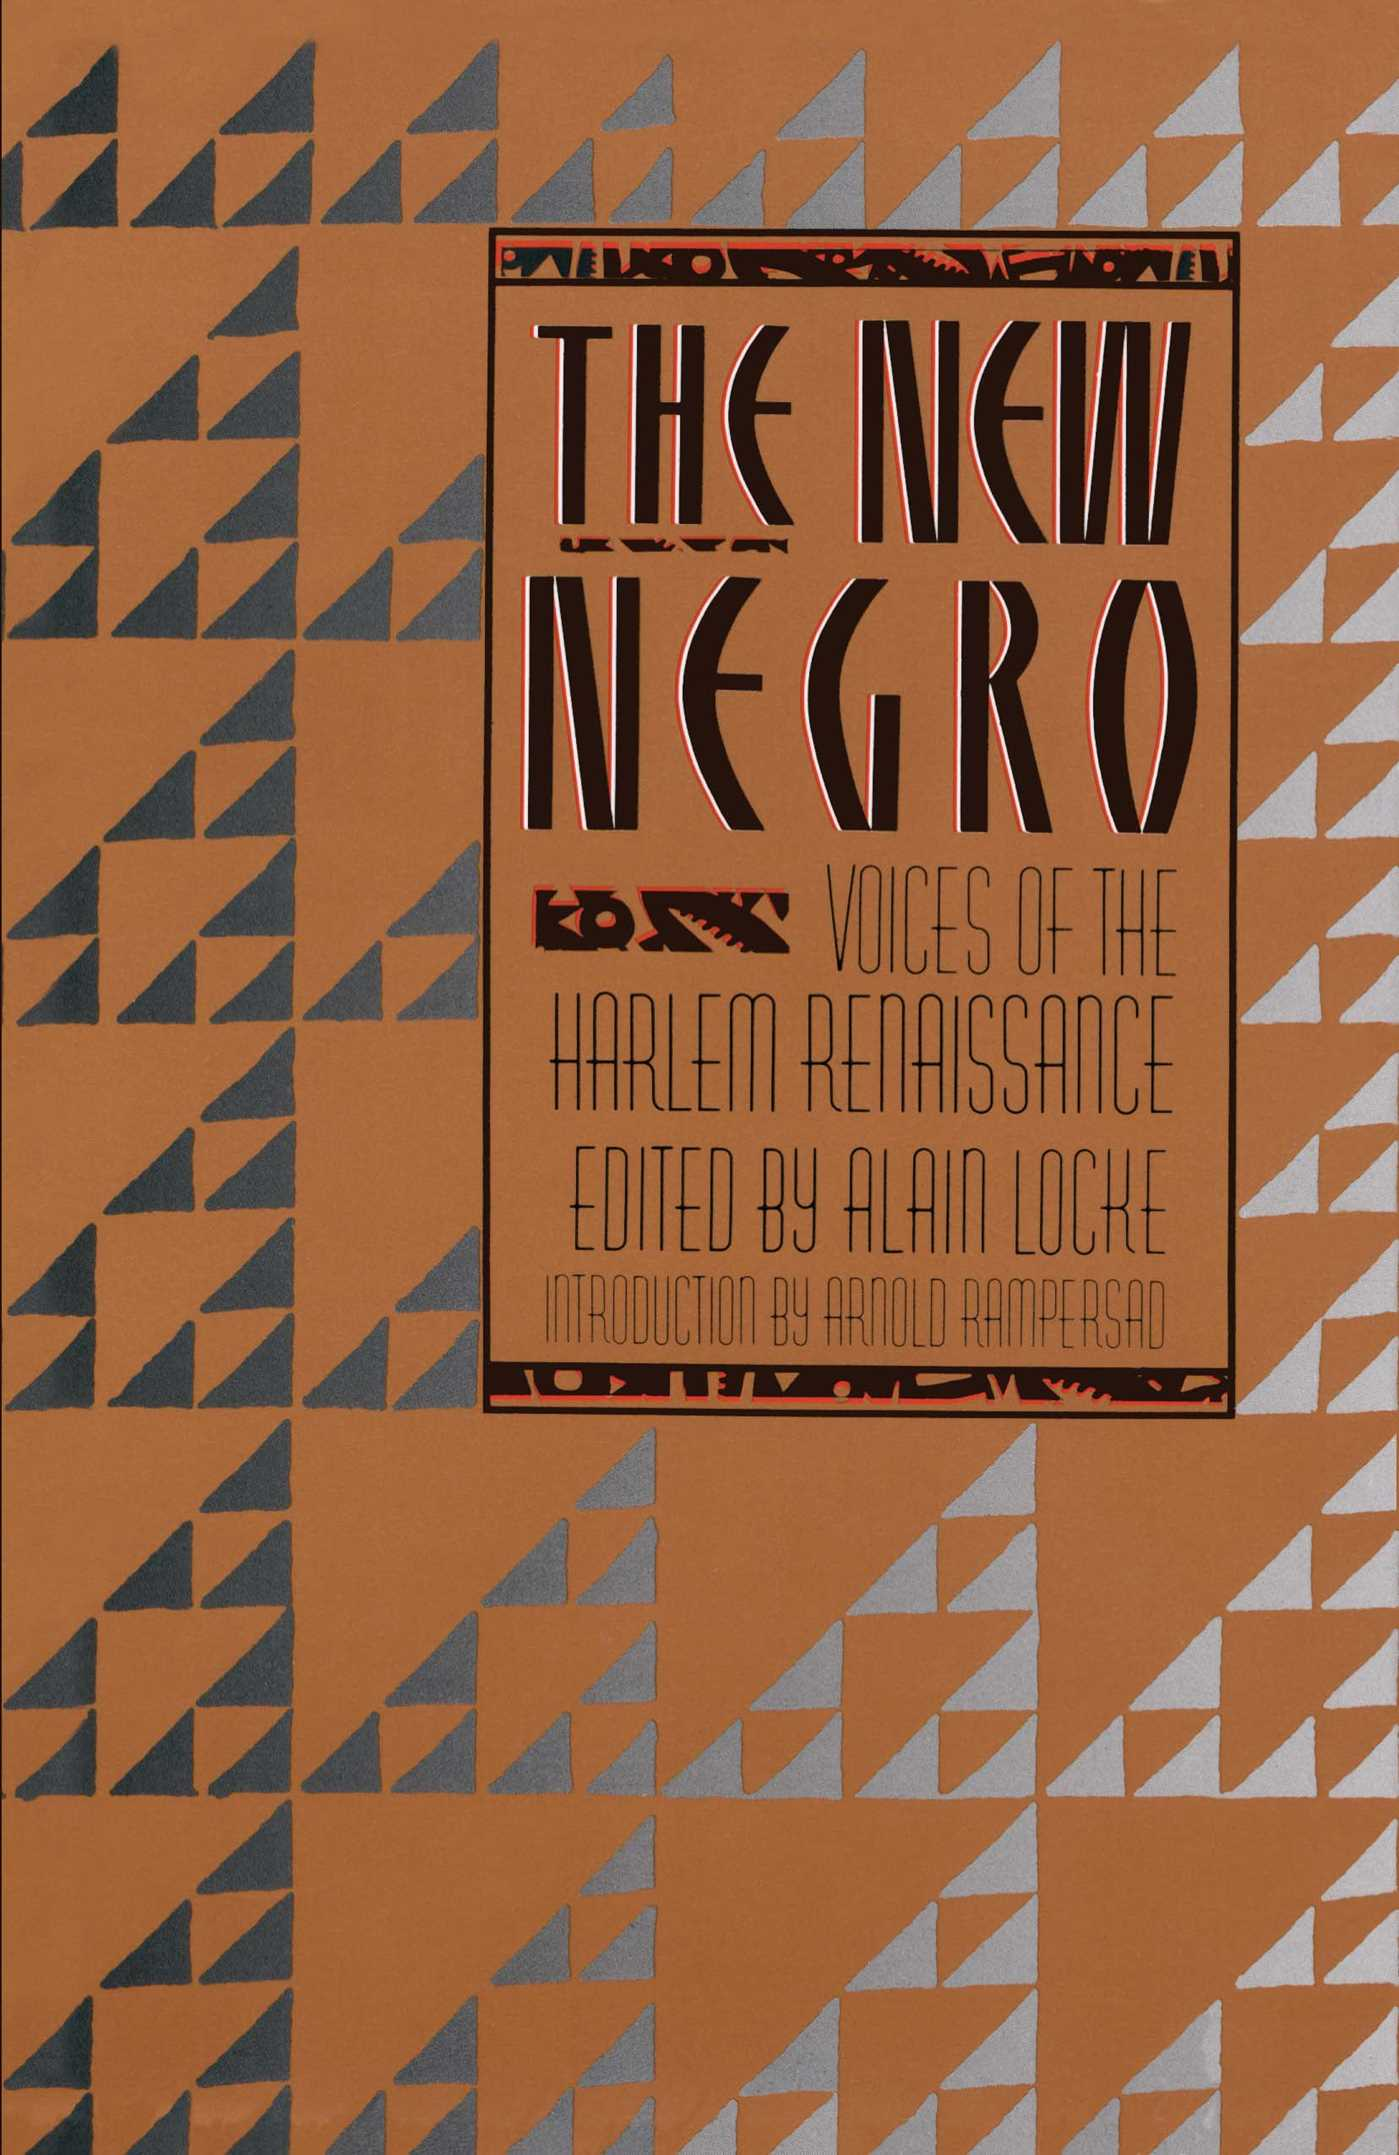 the effects of harlem renaissance on the new negro